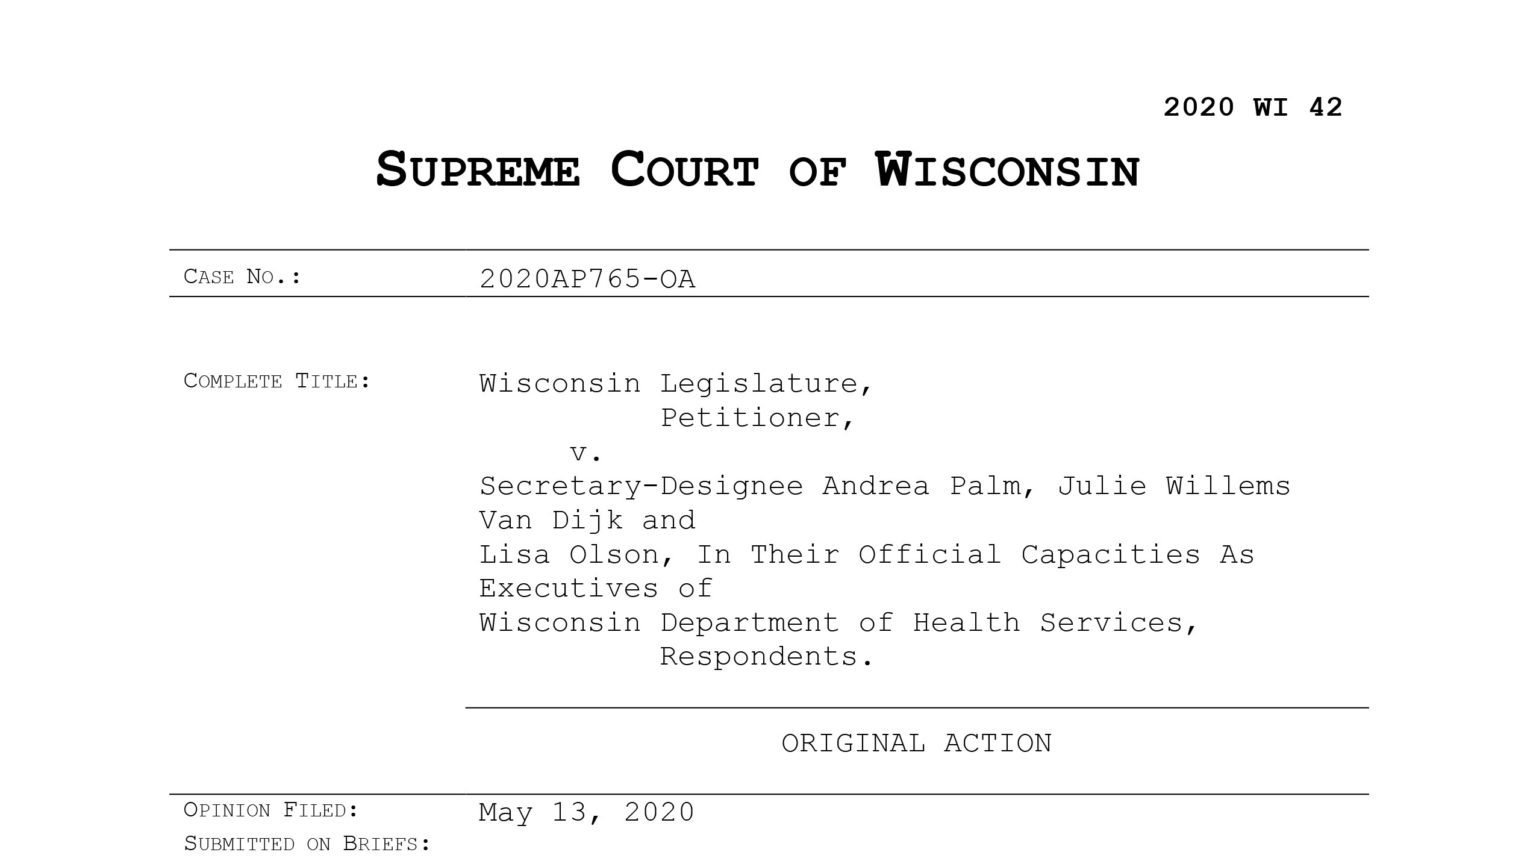 Front page of the Supreme Court's decision striking down the Evers administration's Safer at Home order.